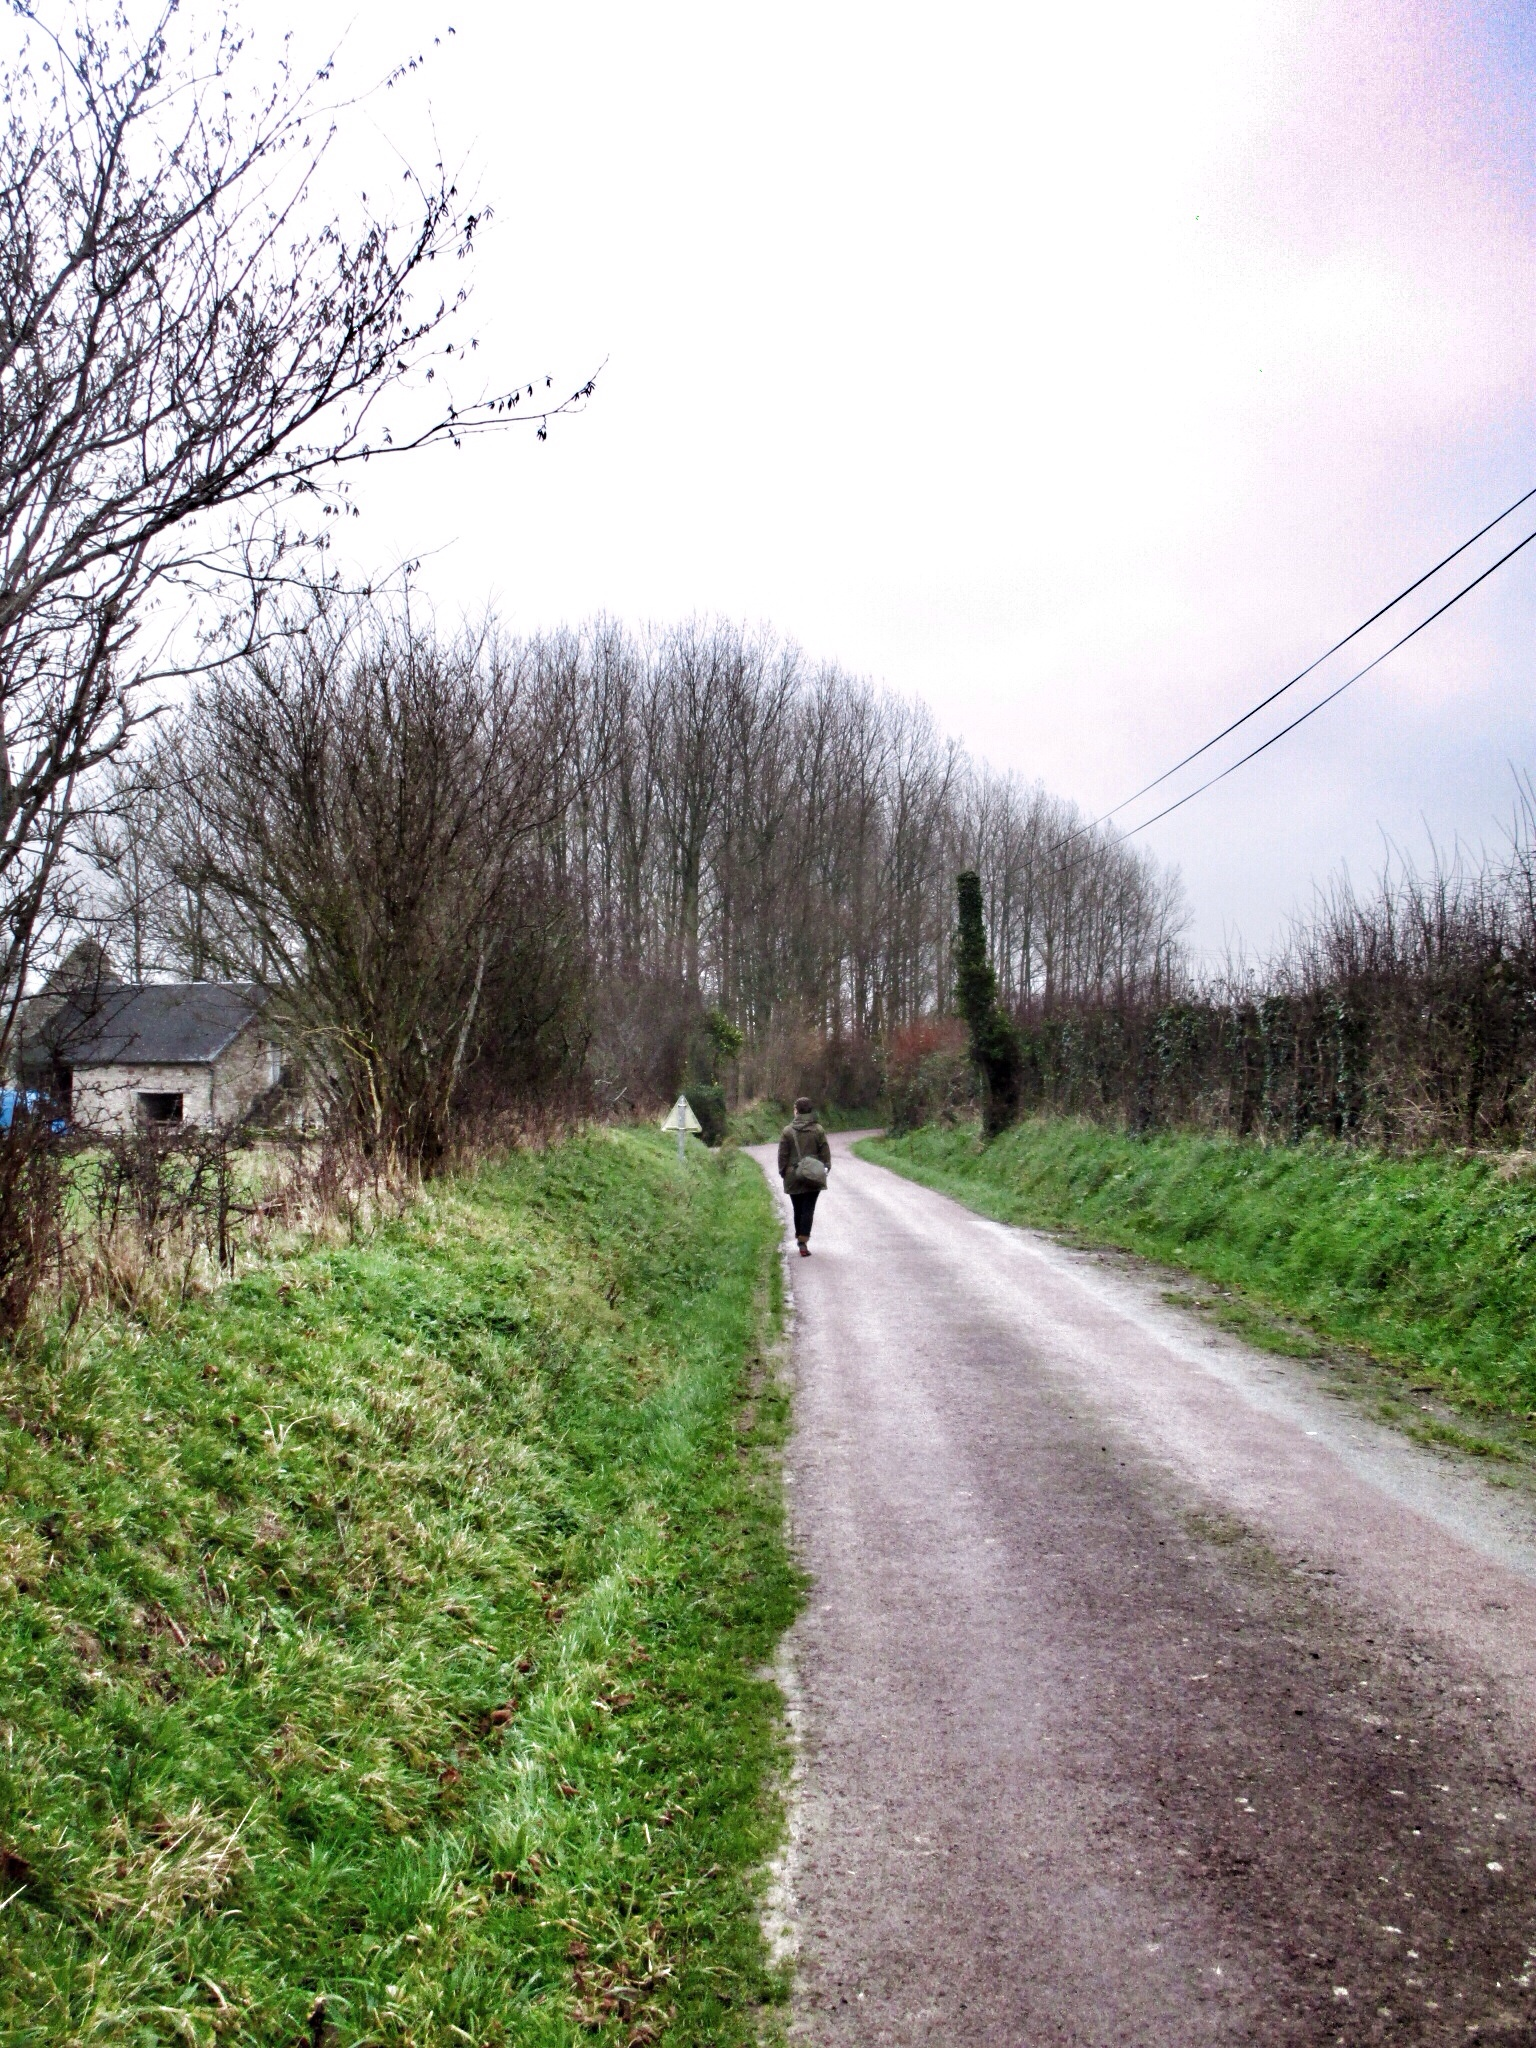 Short country walk in between bands of rain this weekend. This road connects the bed and breakfast to the town.